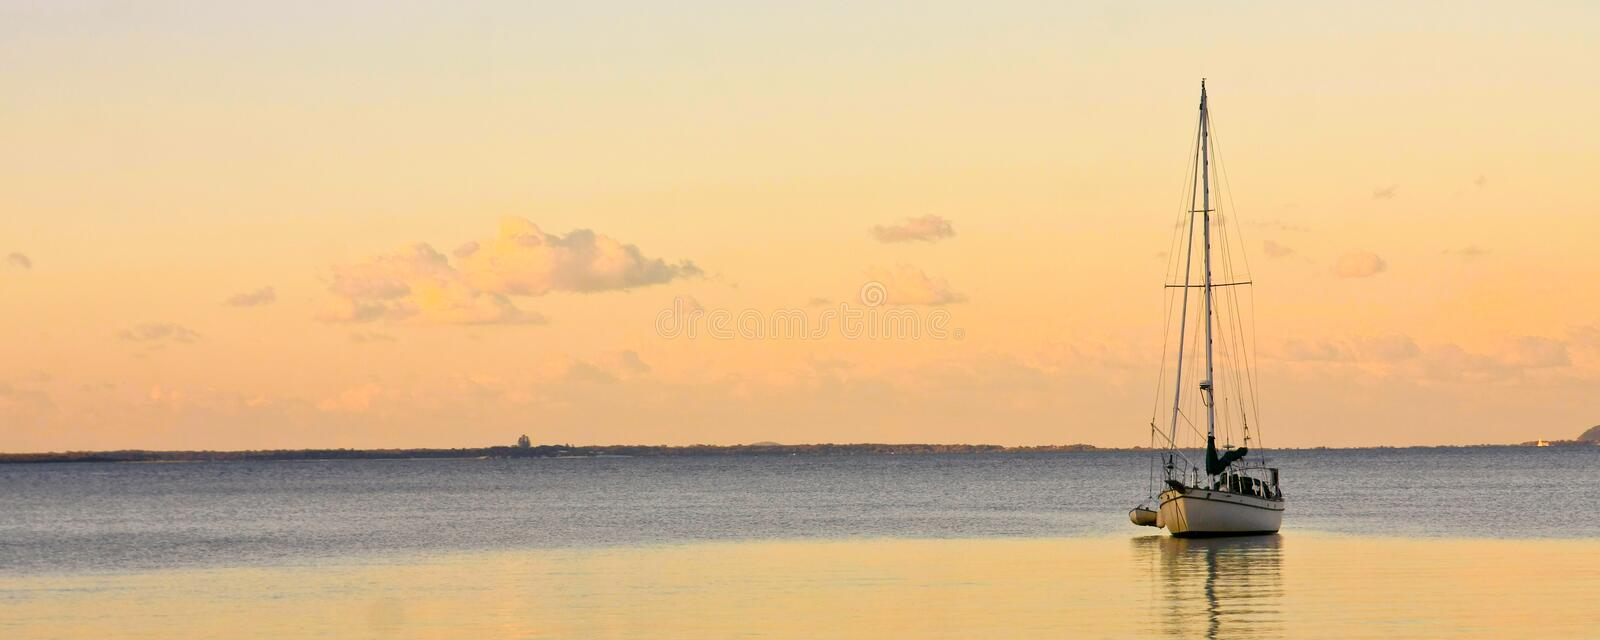 Sailing yacht on calm sea at sunset royalty free stock photography